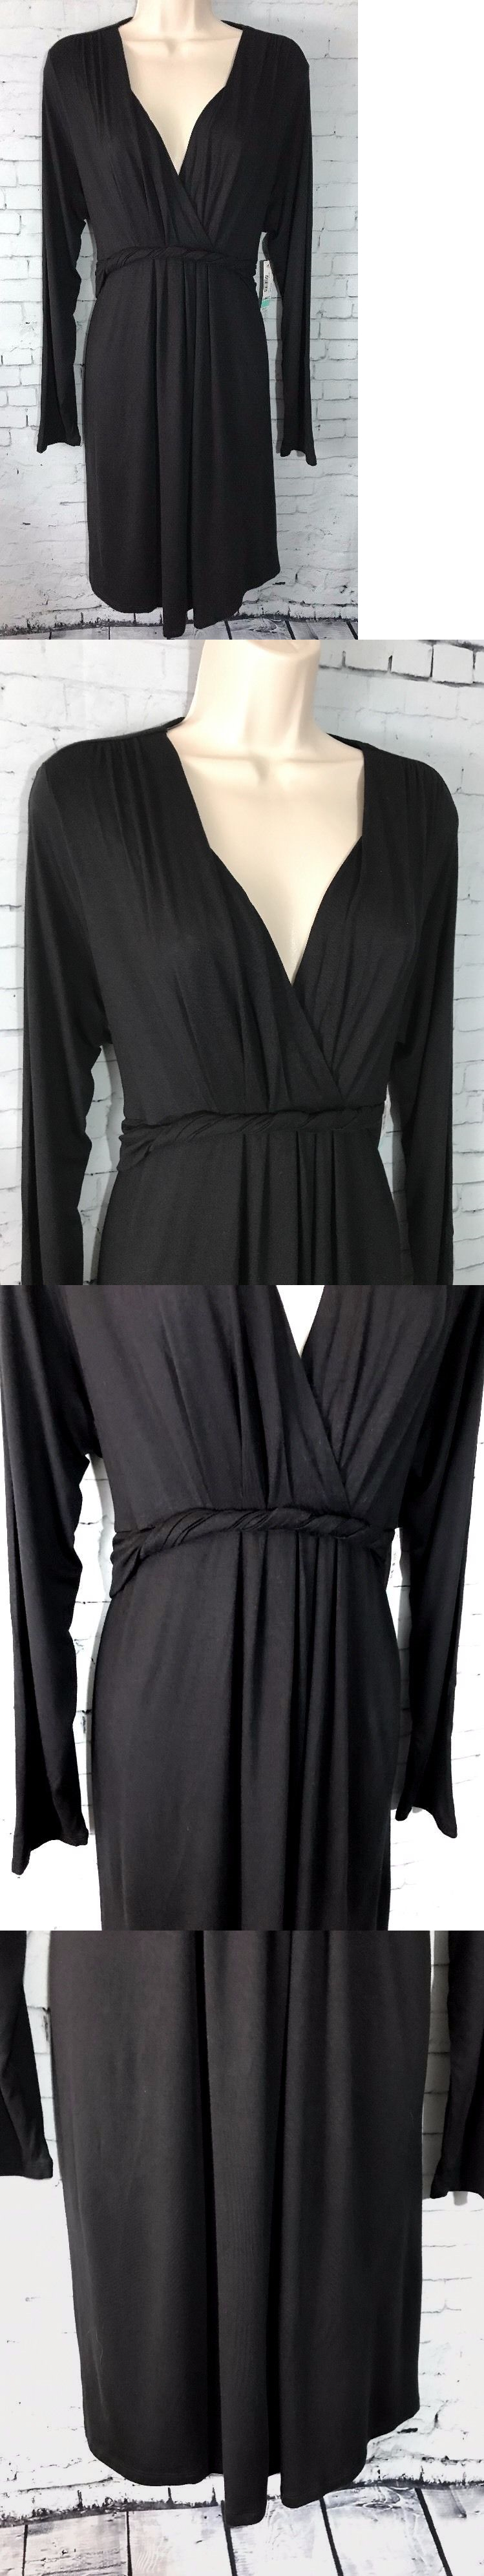 Dresses 11534 duo maternity dress black twist front tie back v dresses 11534 duo maternity dress black twist front tie back v neck long sleeve ombrellifo Images